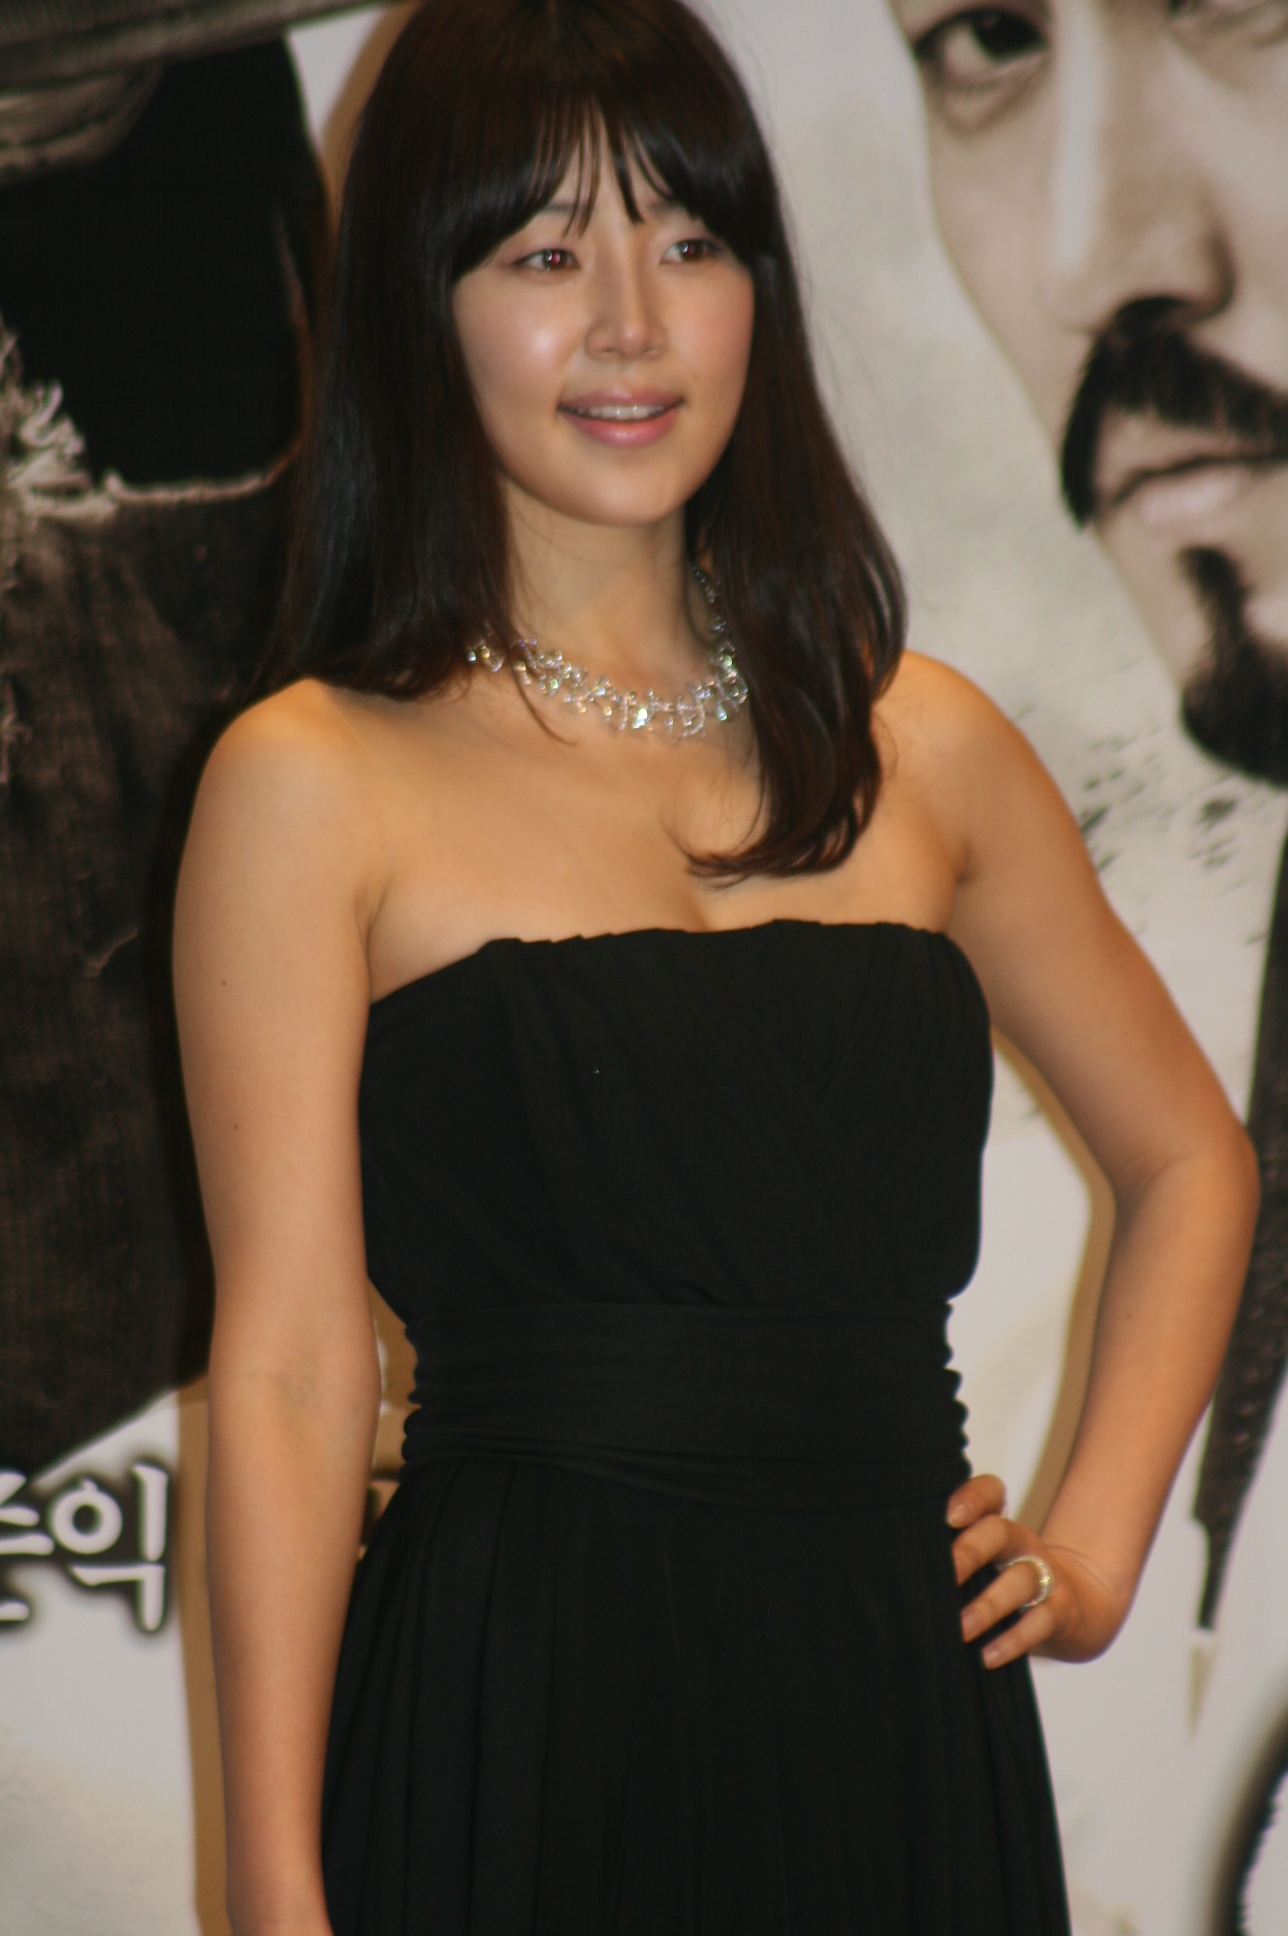 File:Han Ji-hye on March 23, 2010 (2).jpg - Wikimedia Commons